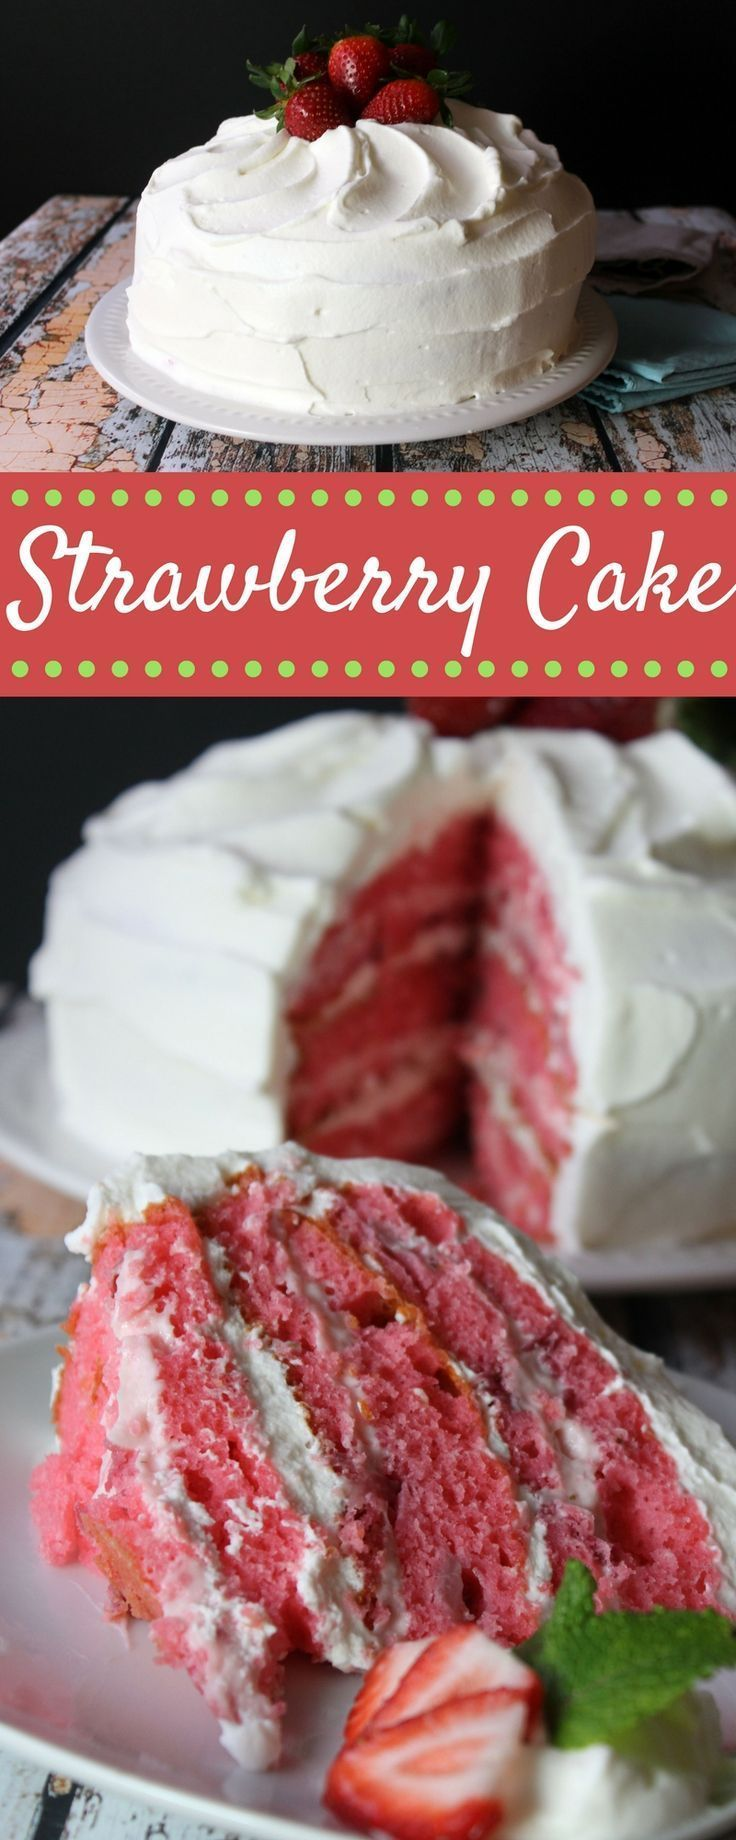 Moist Strawberry Cake 6 layers of strawberry cake deliciousness! this homemade cake is easy to make (despite the many steps). it's a must-try summer dessert! Strawberry Cake 6 layers of strawberry cake deliciousness! this homemade cake is easy to make (despite the many steps). it's a must-try summer dessert!6 layers of strawberry cake deliciousness! this homemade cake is easy to make (despite the many steps). it's a must-try summer dessert!